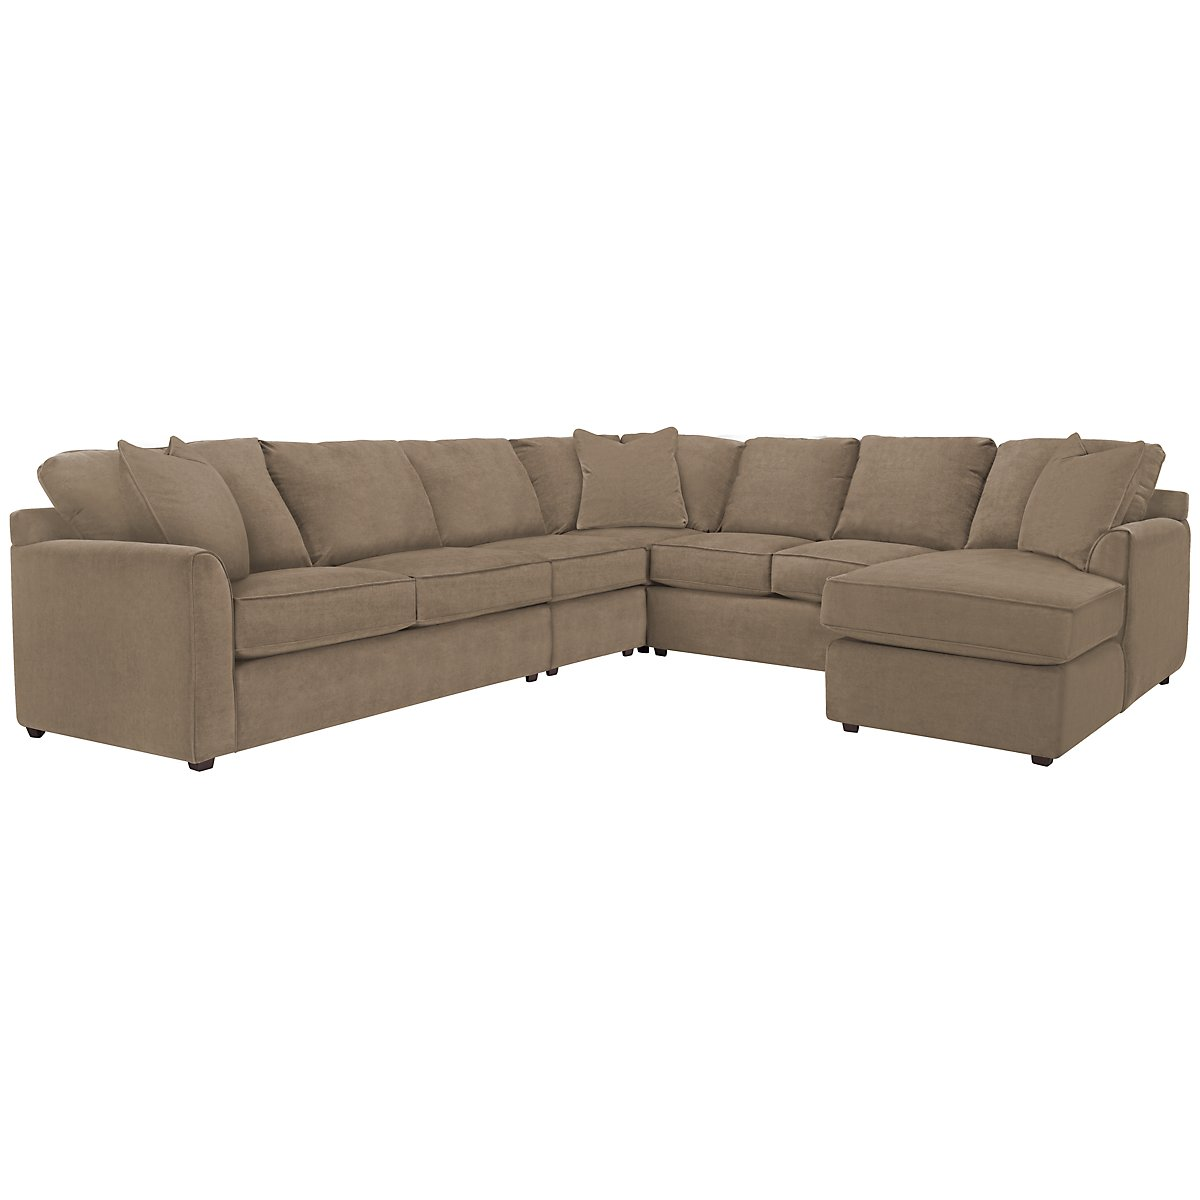 Express3 Light Brown Microfiber Large Right Chaise Sectional